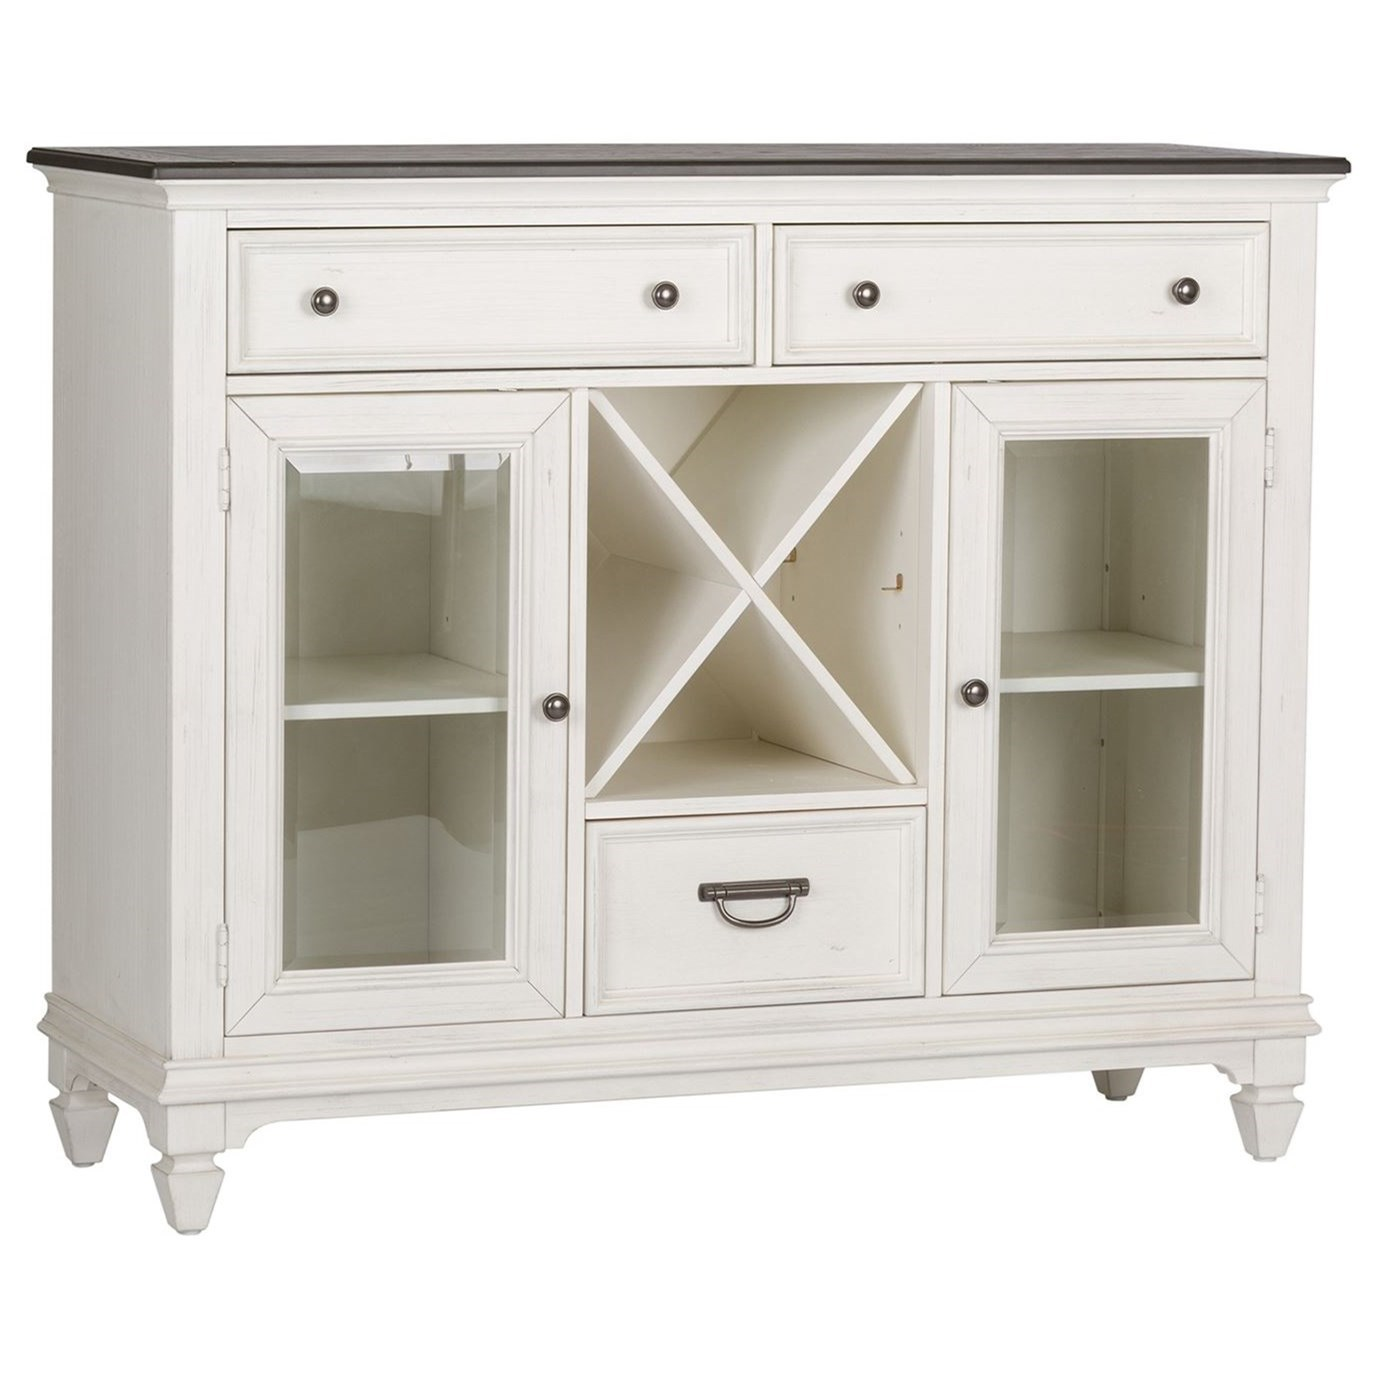 Allyson Park 3 Drawer 2 Door Buffet by Liberty Furniture at Steger's Furniture